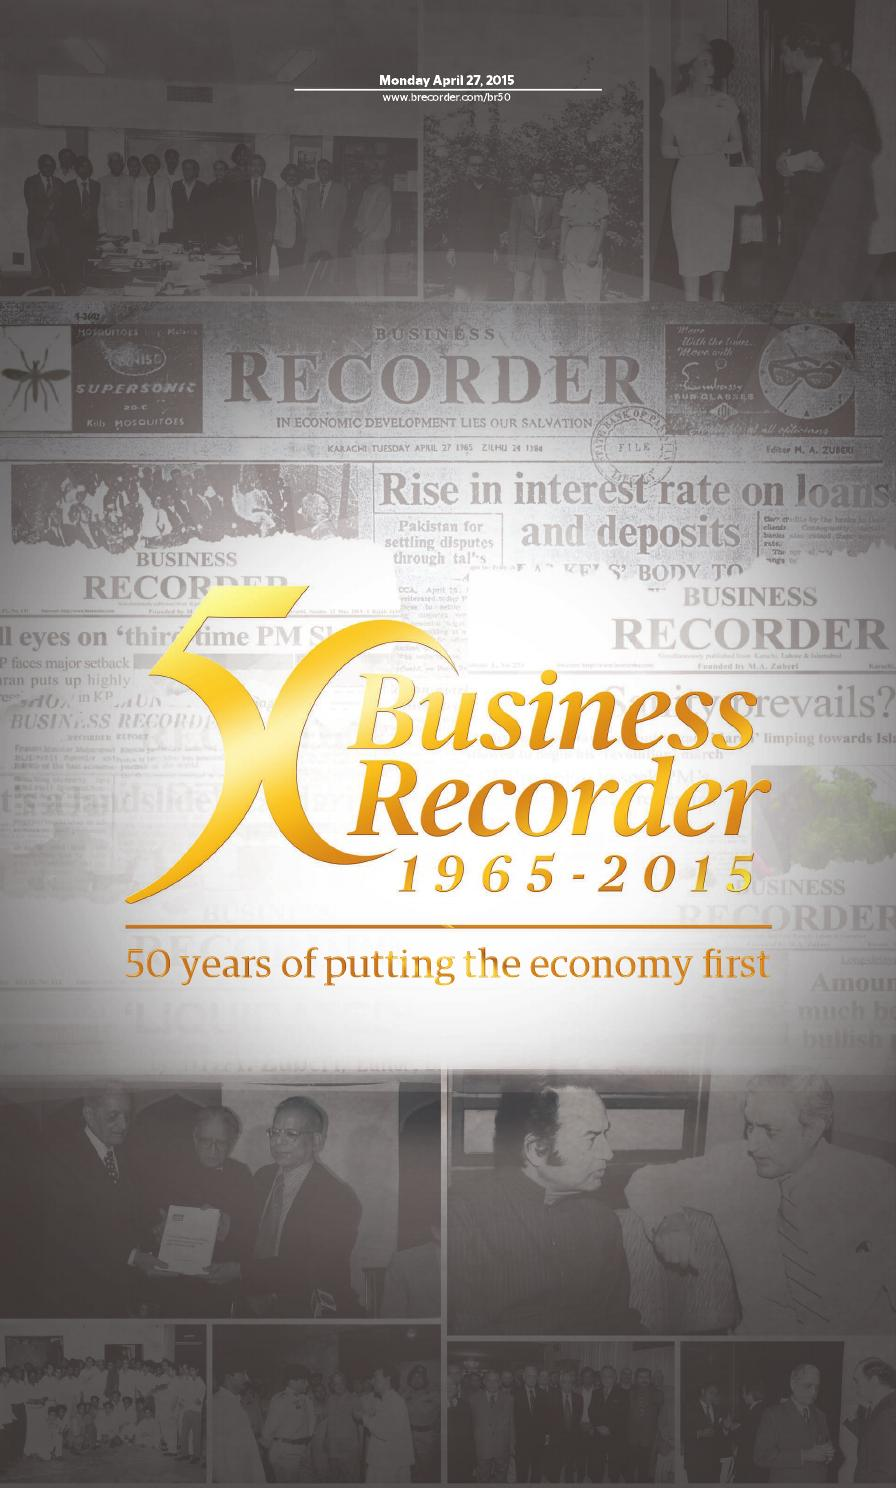 Business Recorder - 50 years of putting the economy first by